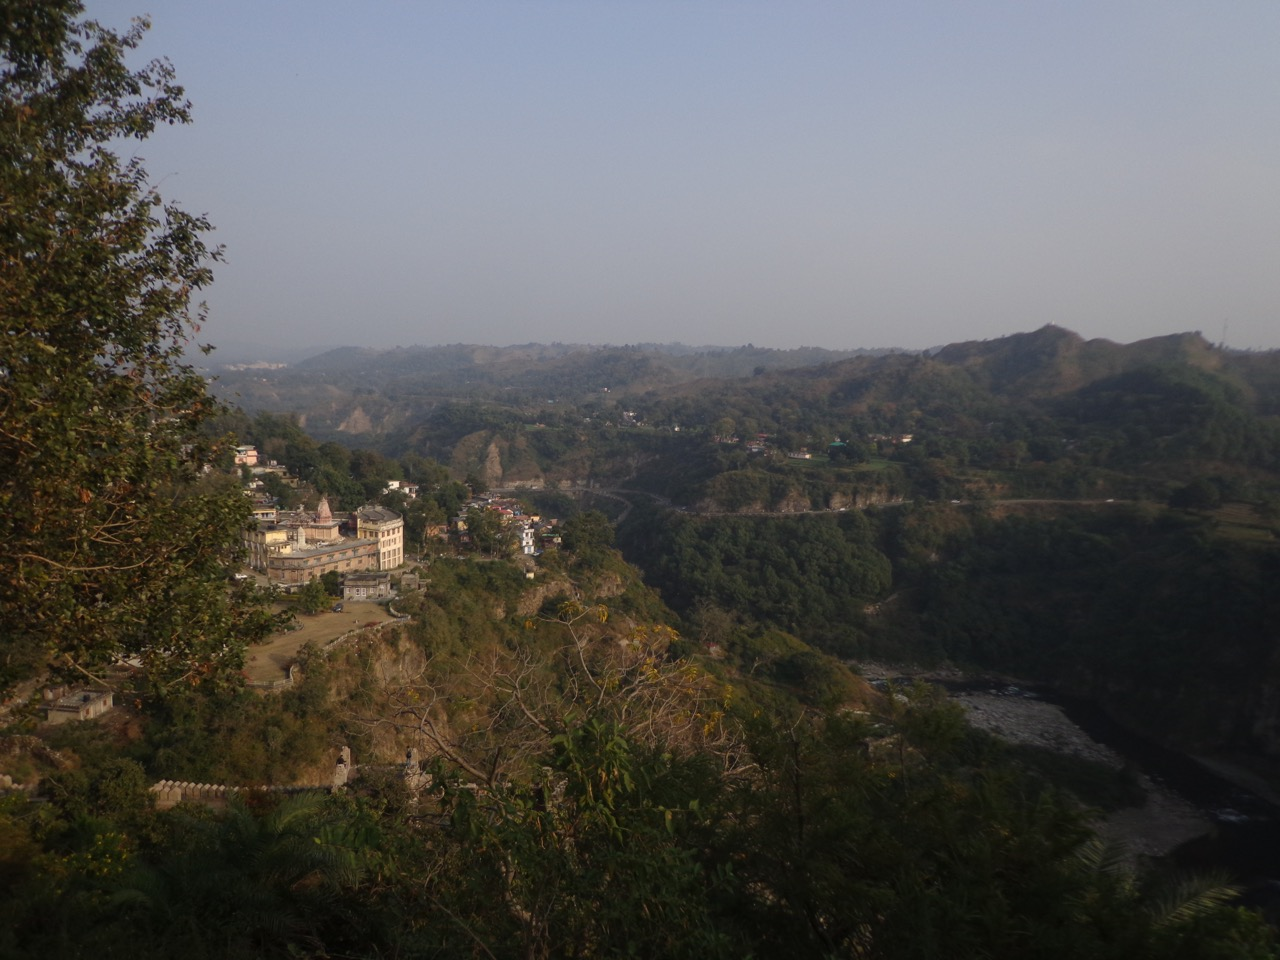 Kangra Valley and NH 503 visible from the top of the fort.